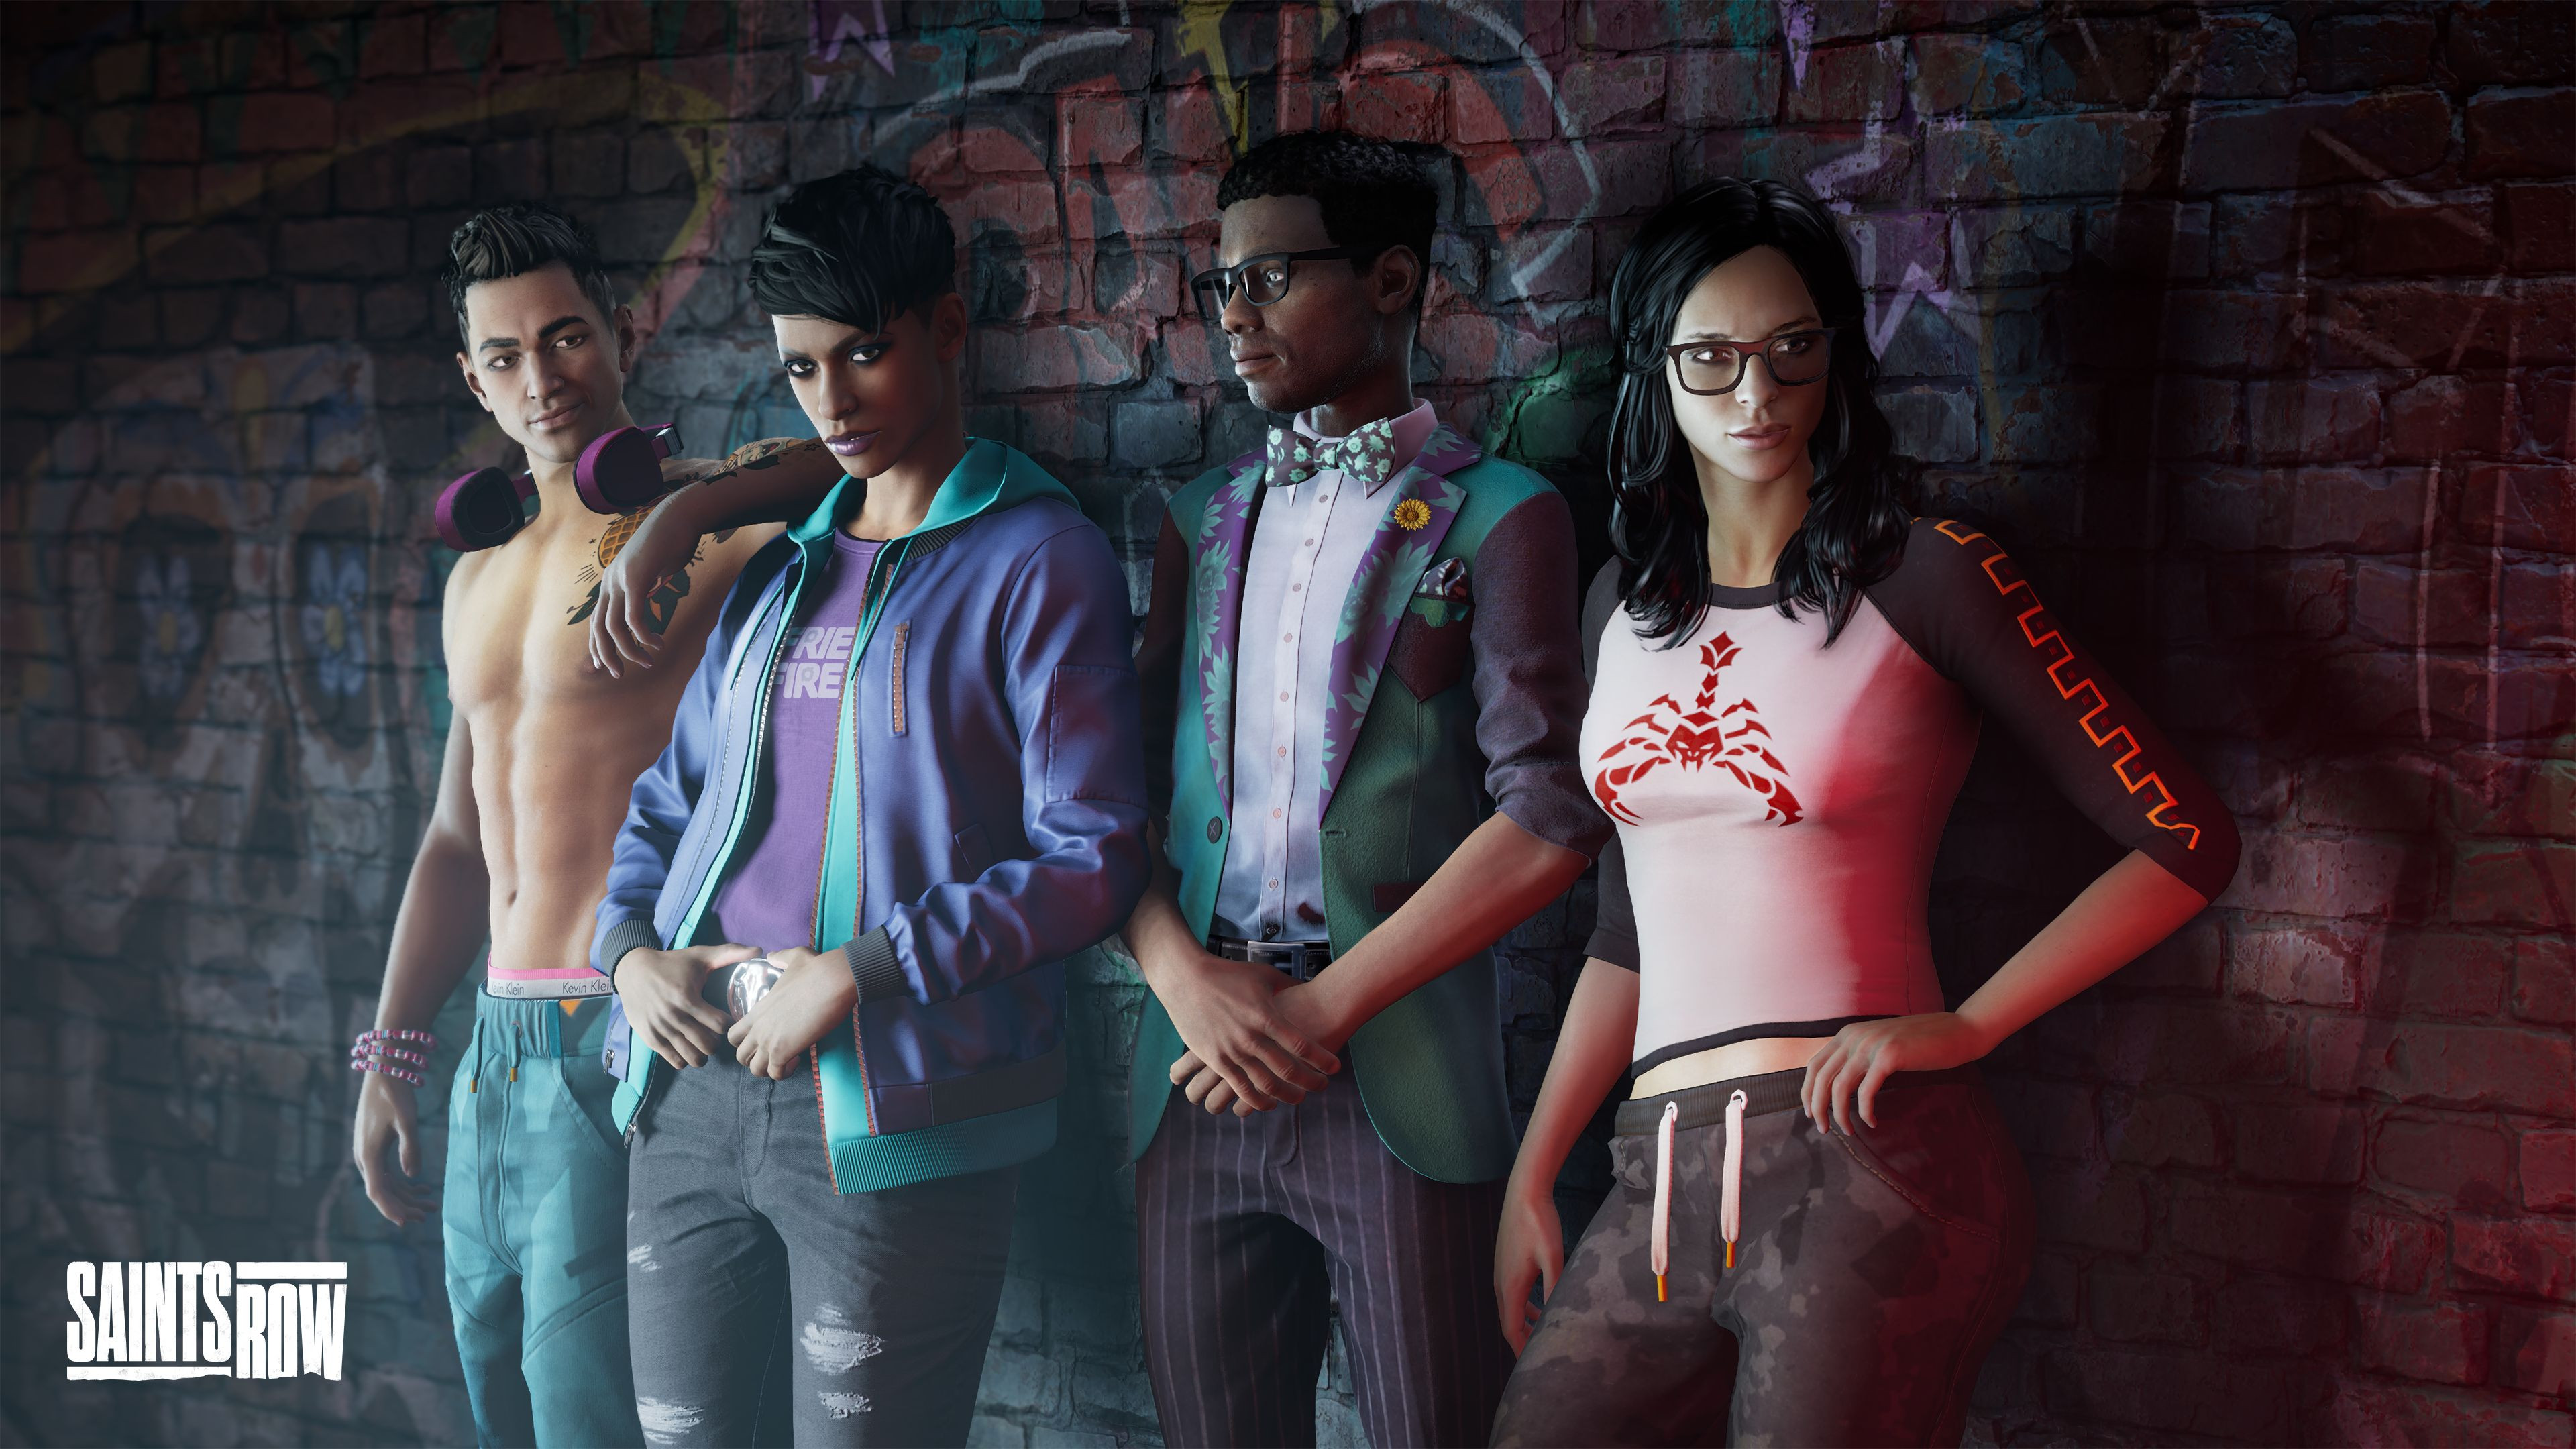 Saints Row fans downvote reboot trailer as Volition release new gameplay footage